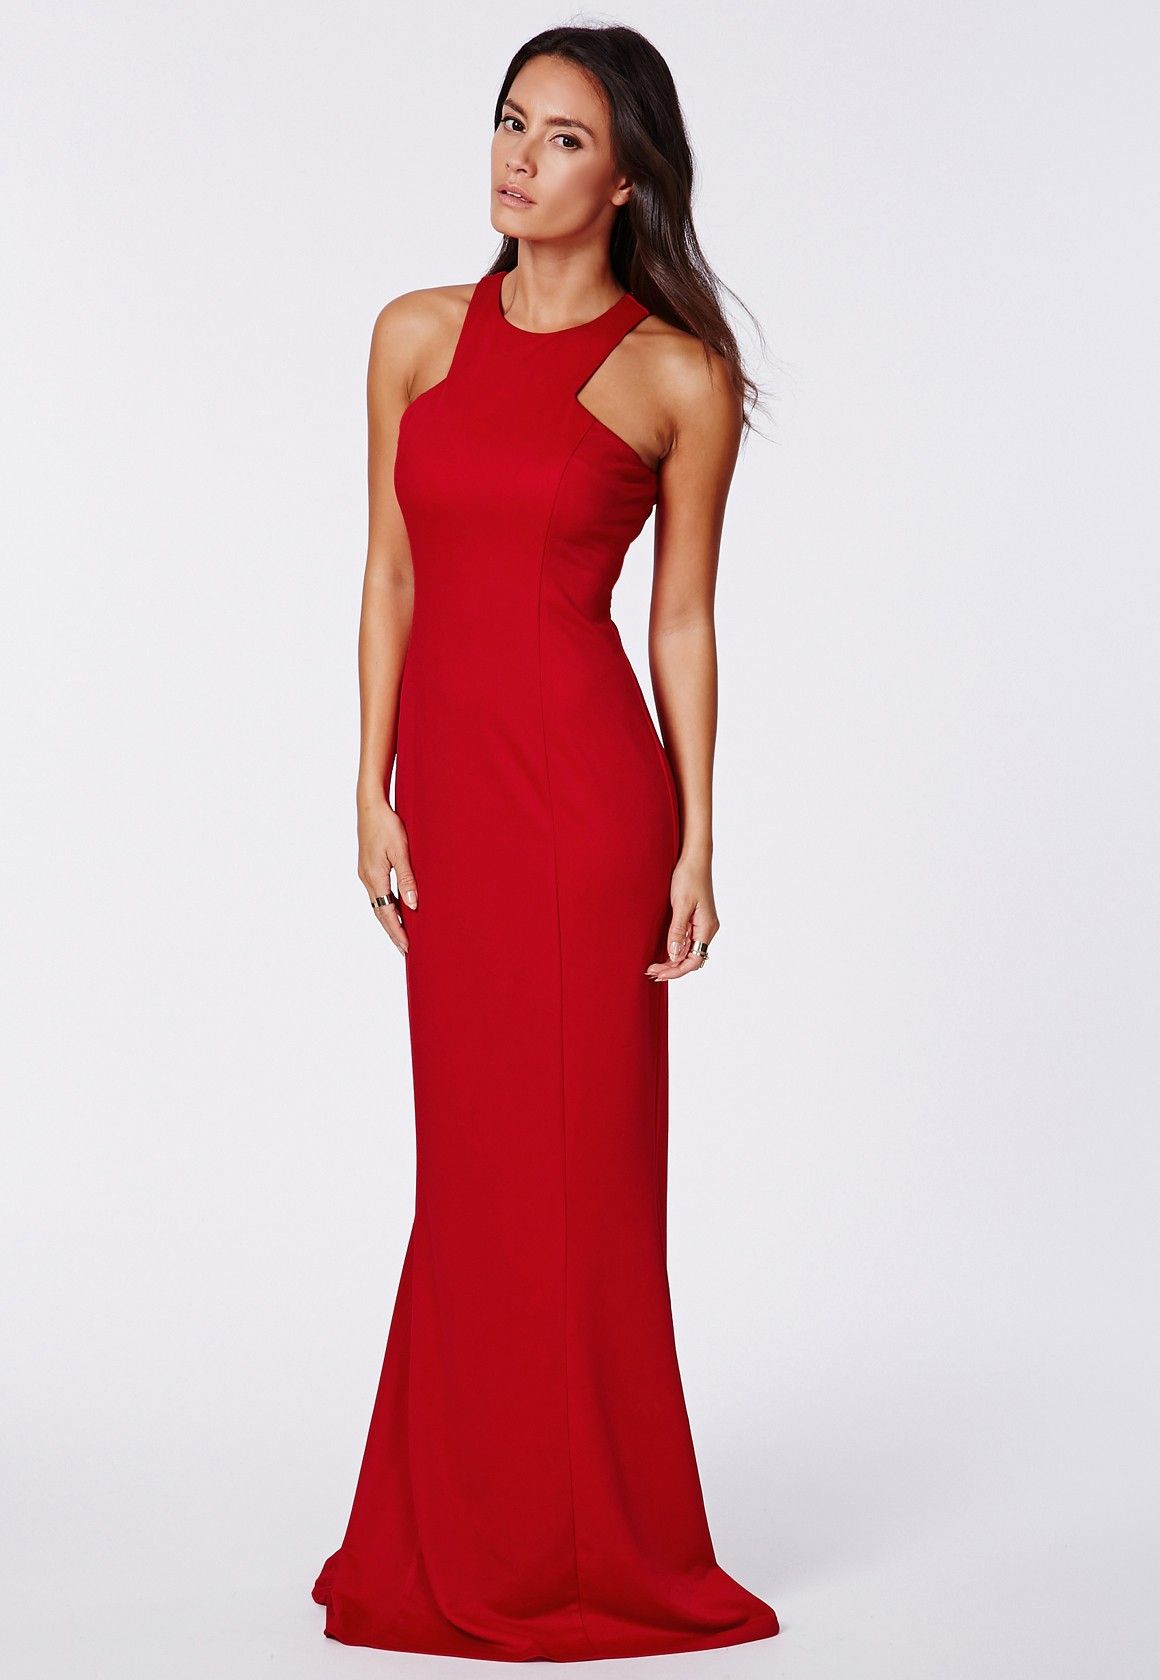 17 Best images about Red Maxi Dress on Pinterest  ASOS Red ...